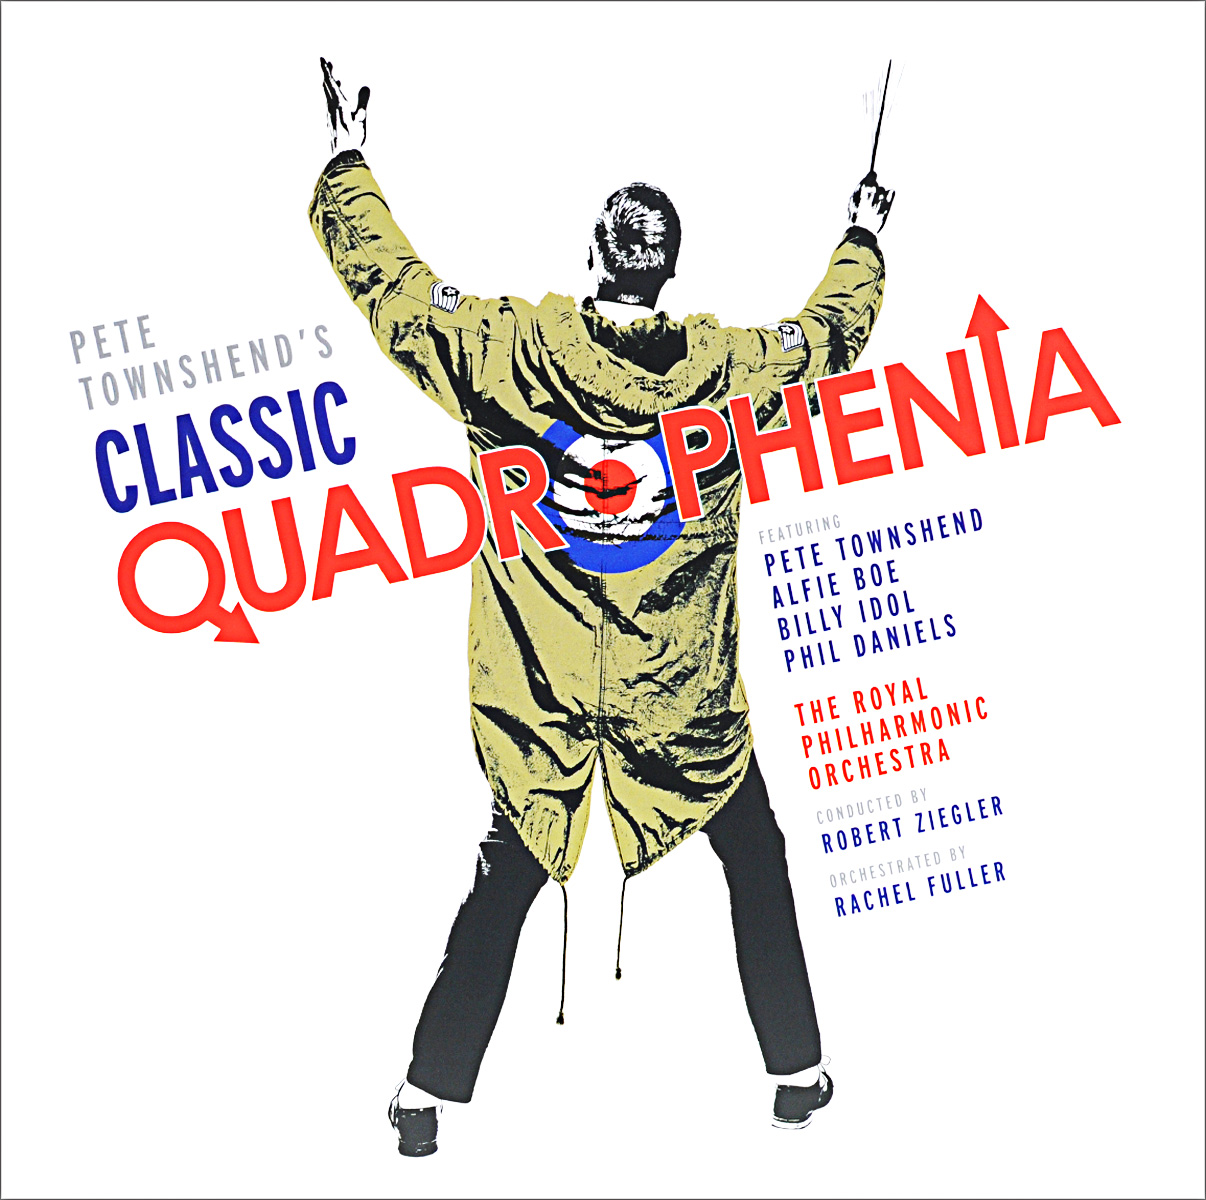 Пит Тауншенд Pete Townshend. Classic Quadrophenia (2 LP) pete townshend s classic quadrophenia live from the royal albert hall